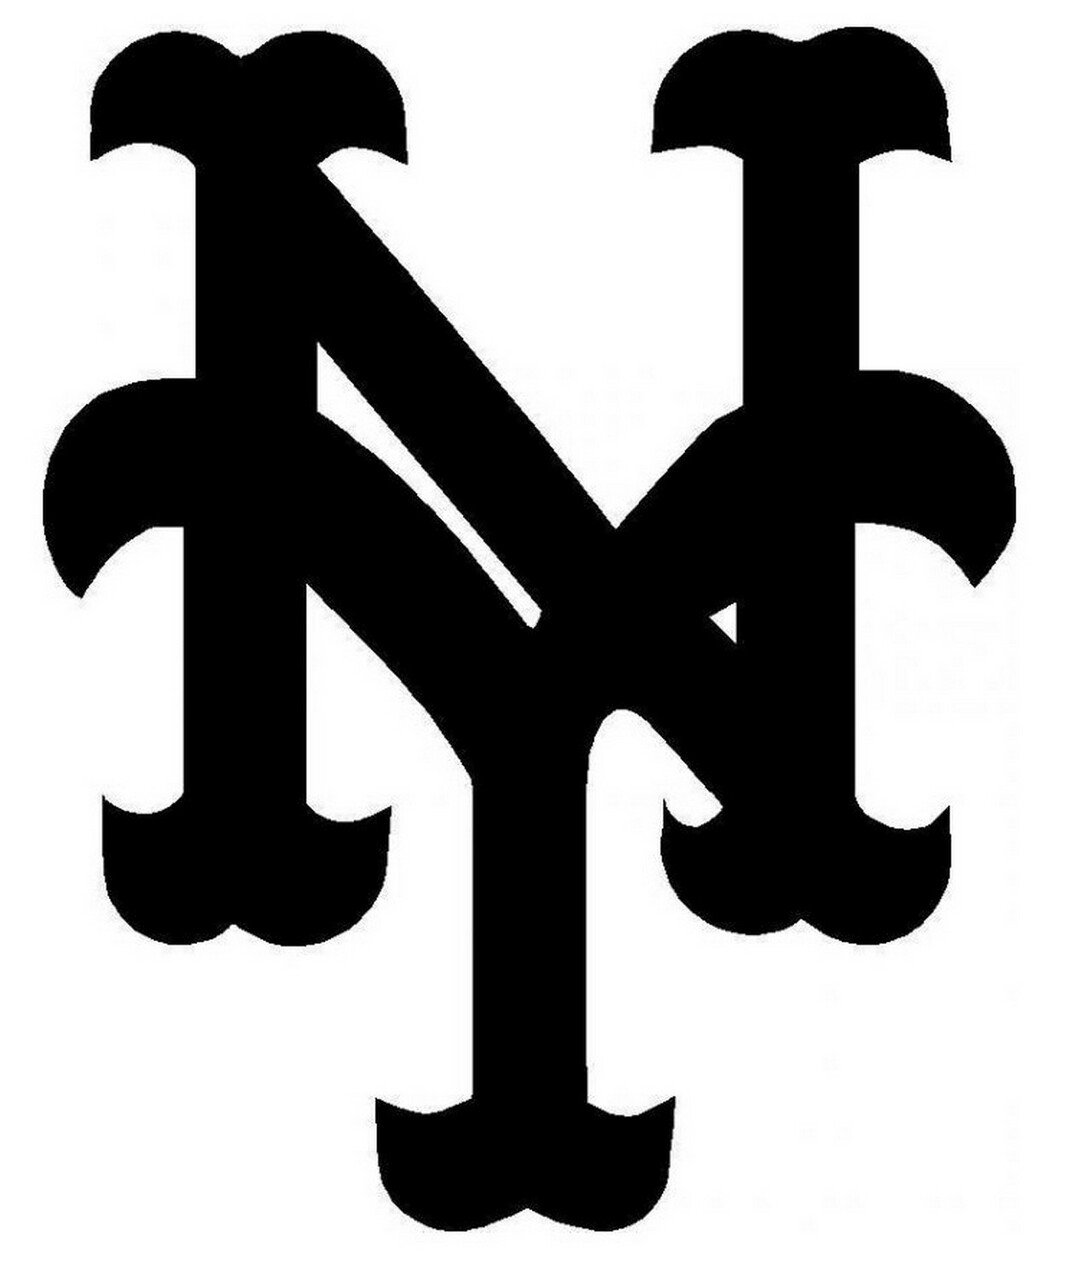 mets logo pictures ny mets logo mlb vinyl decal sticker for car truck window mets pictures logo